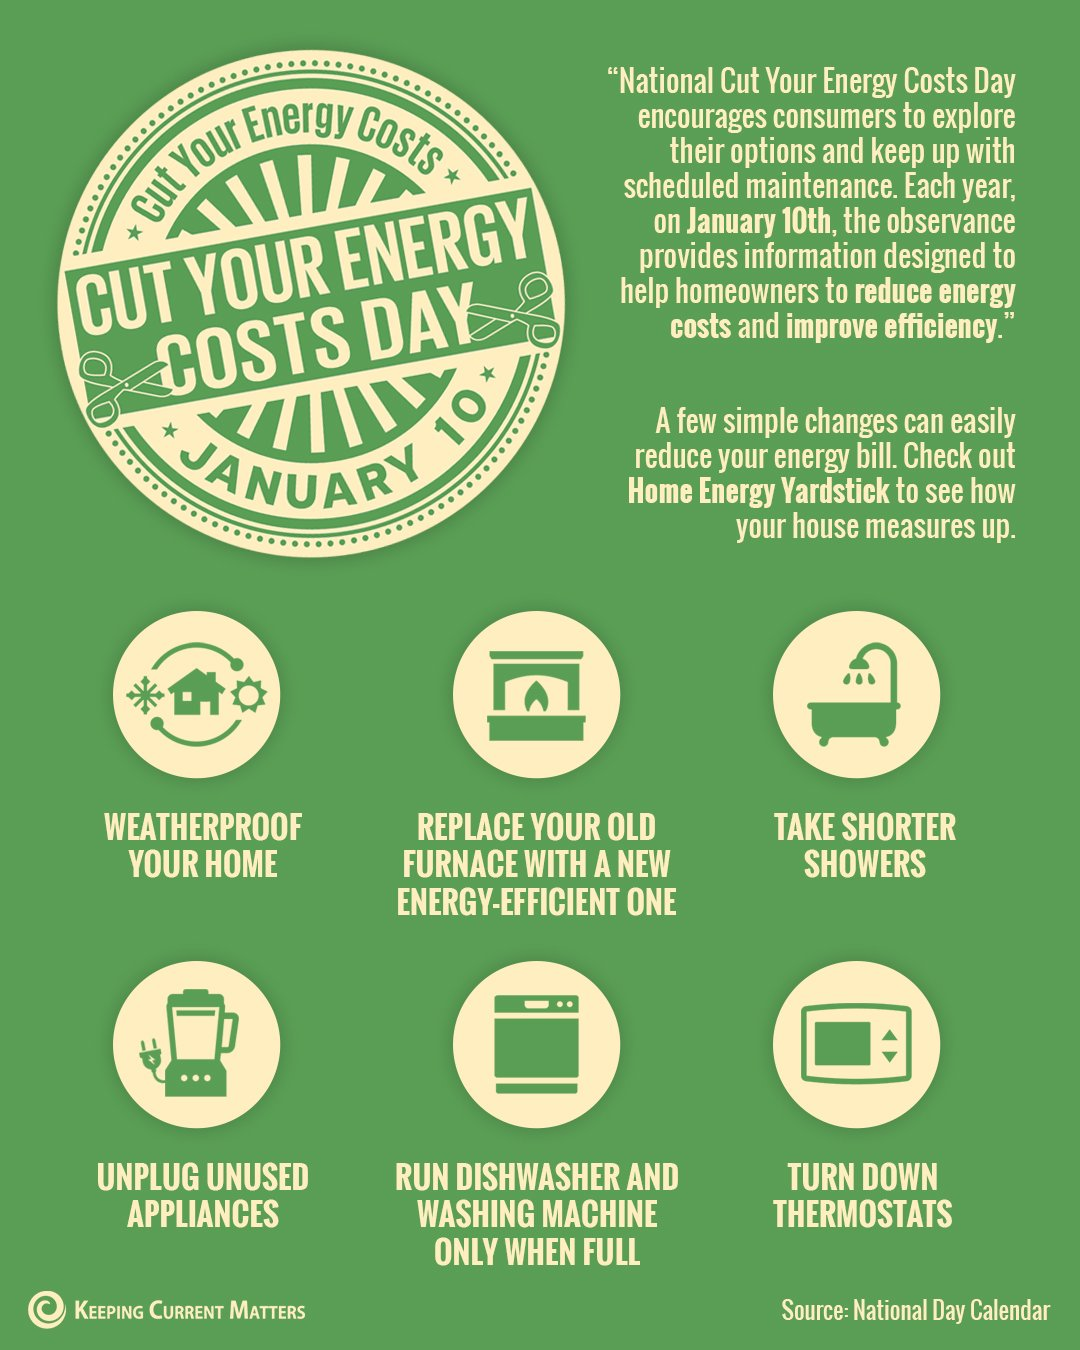 National Cut Your Energy Costs Day [INFOGRAPHIC] | Keeping Current Matters